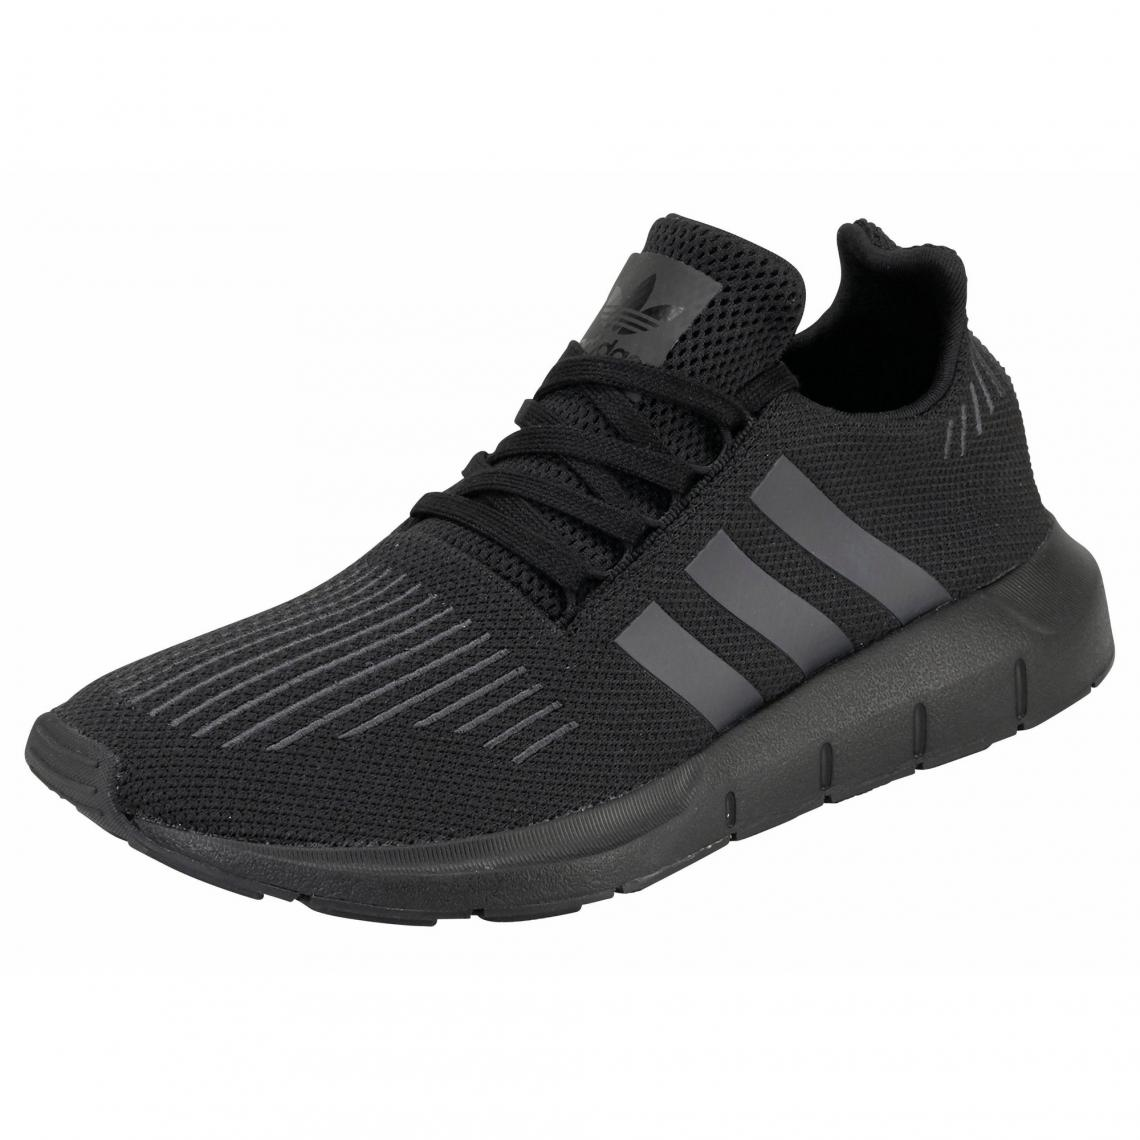 0440c9b1b86974 adidas Originals Swift Run chaussures running homme - Noir Adidas Originals  Homme